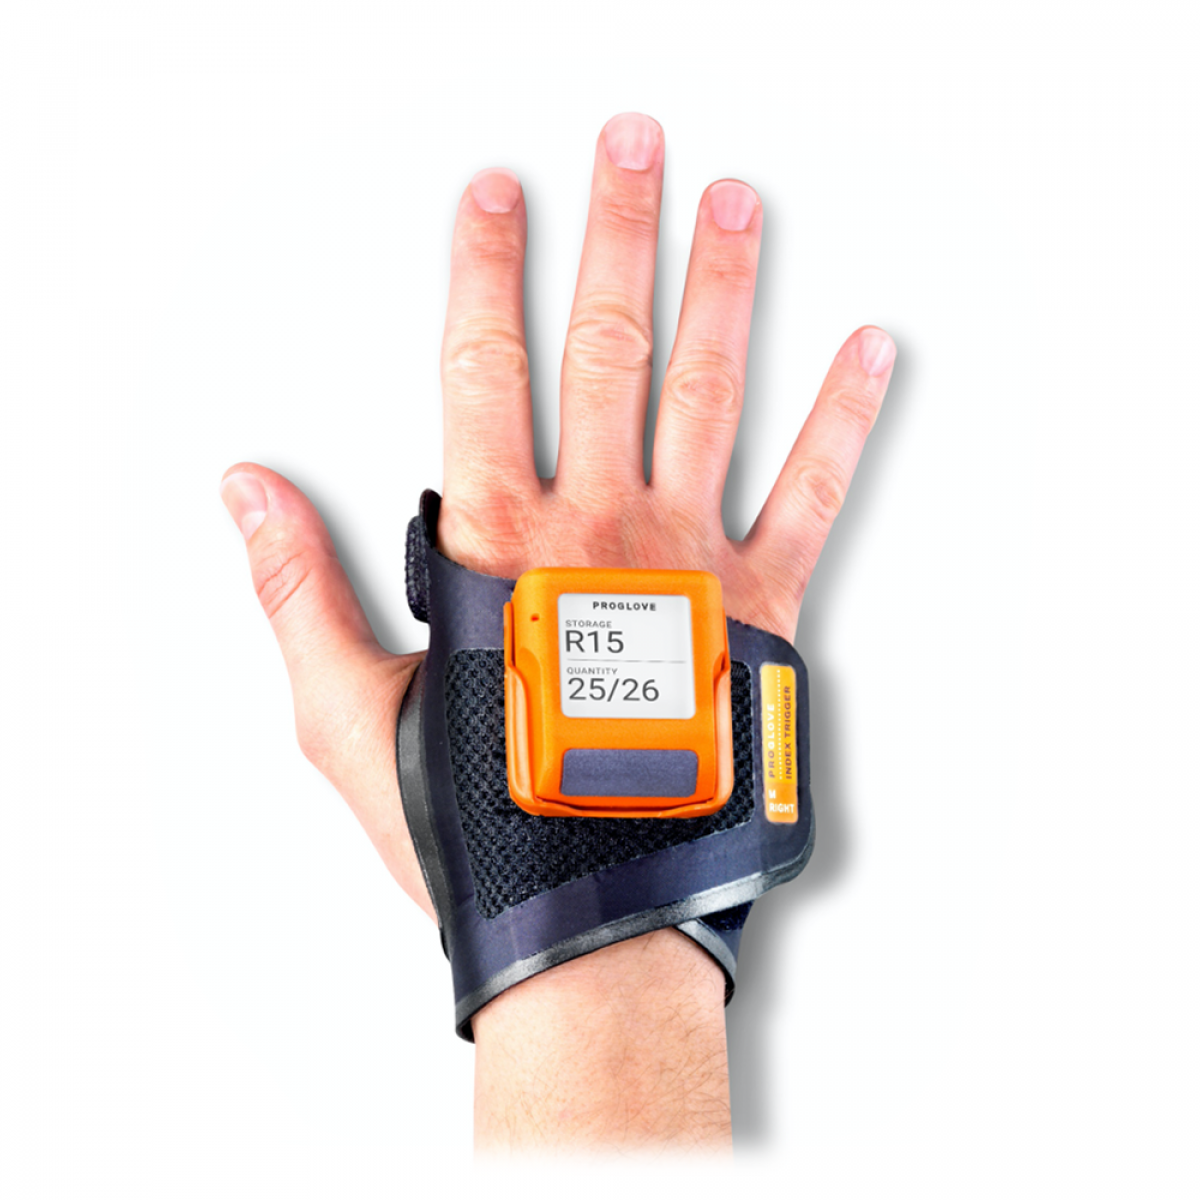 ProGlove wireless & wearable barcode scanner with display